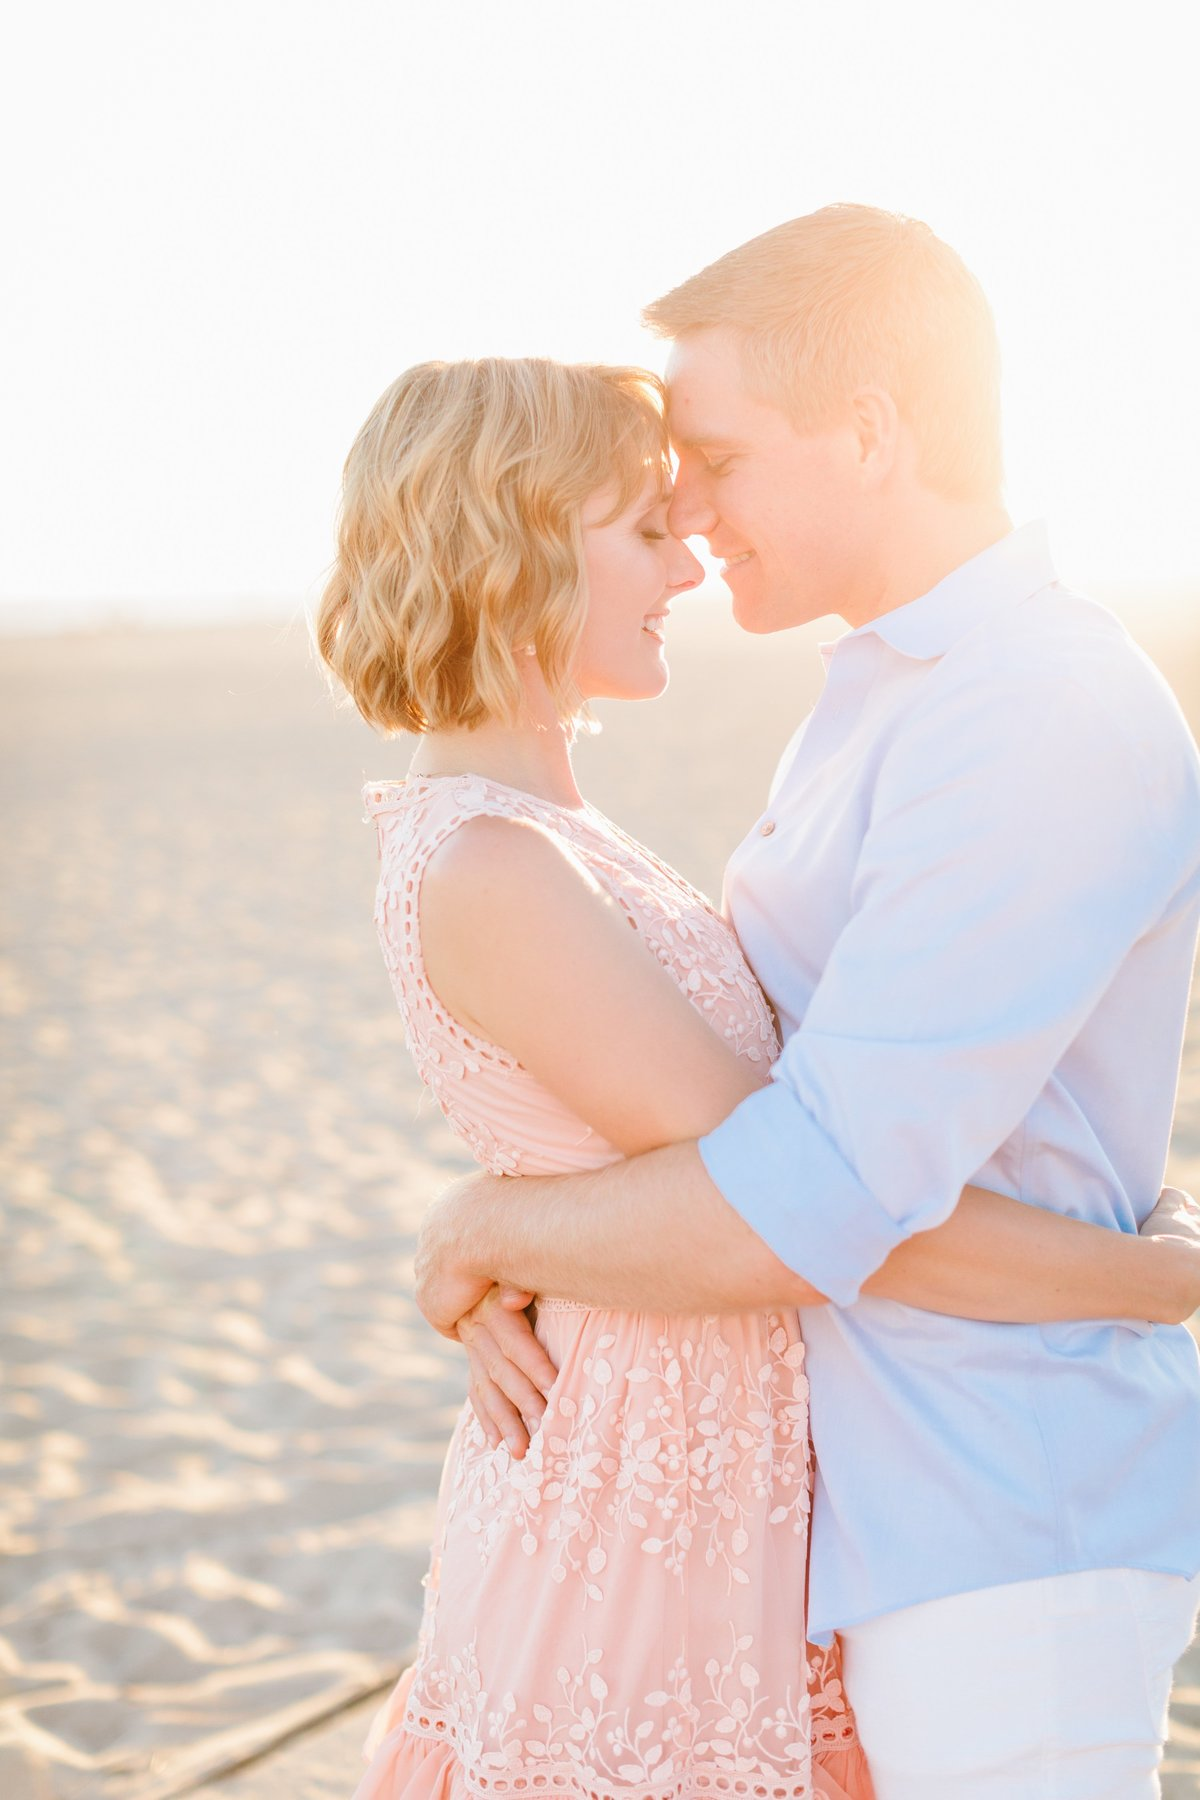 Best California Engagement Photographer-Jodee Debes Photography-41